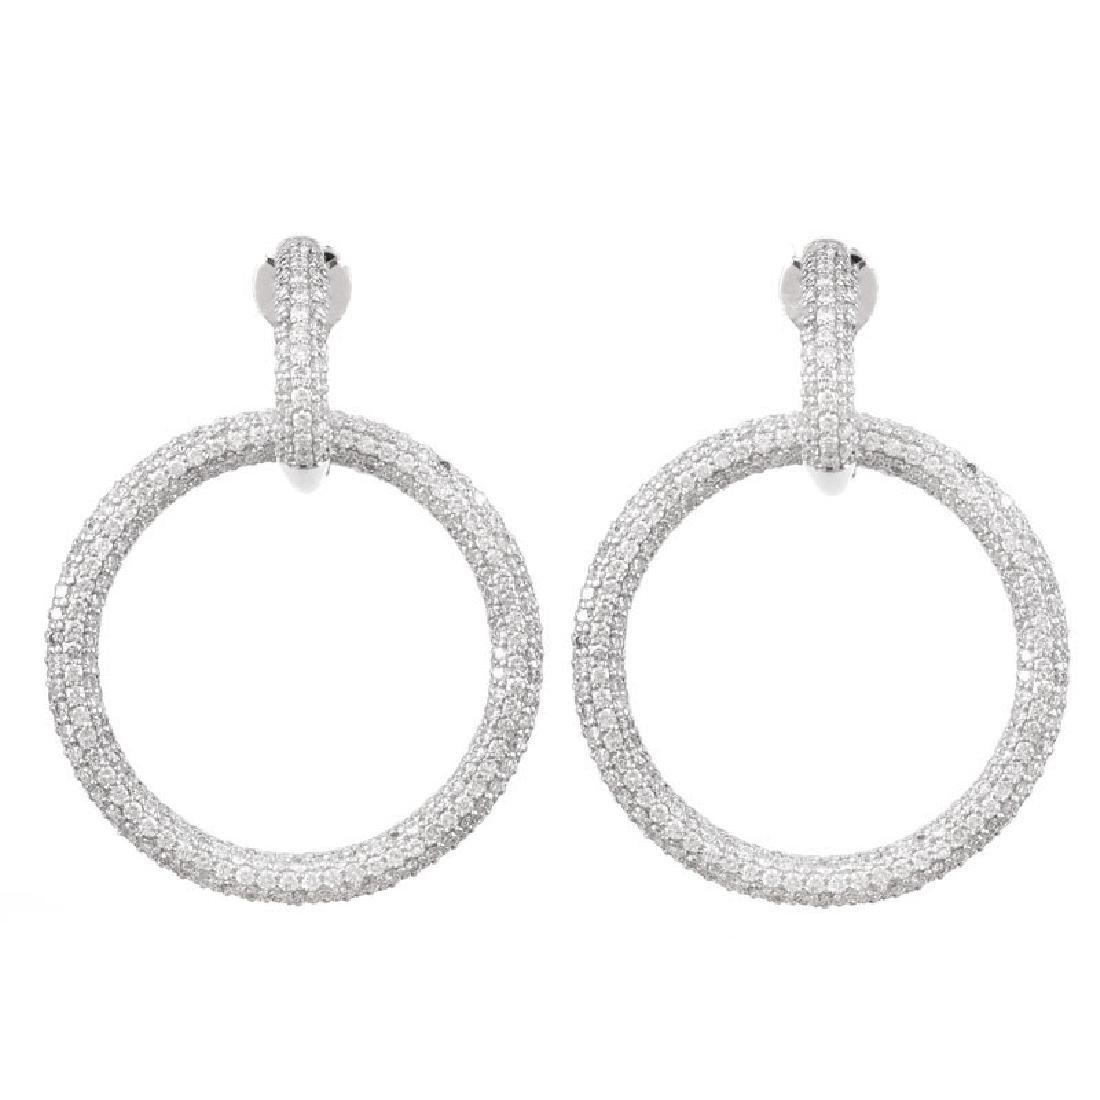 Contemporary Approx. 7.0 Carat Micro Pave Set Round